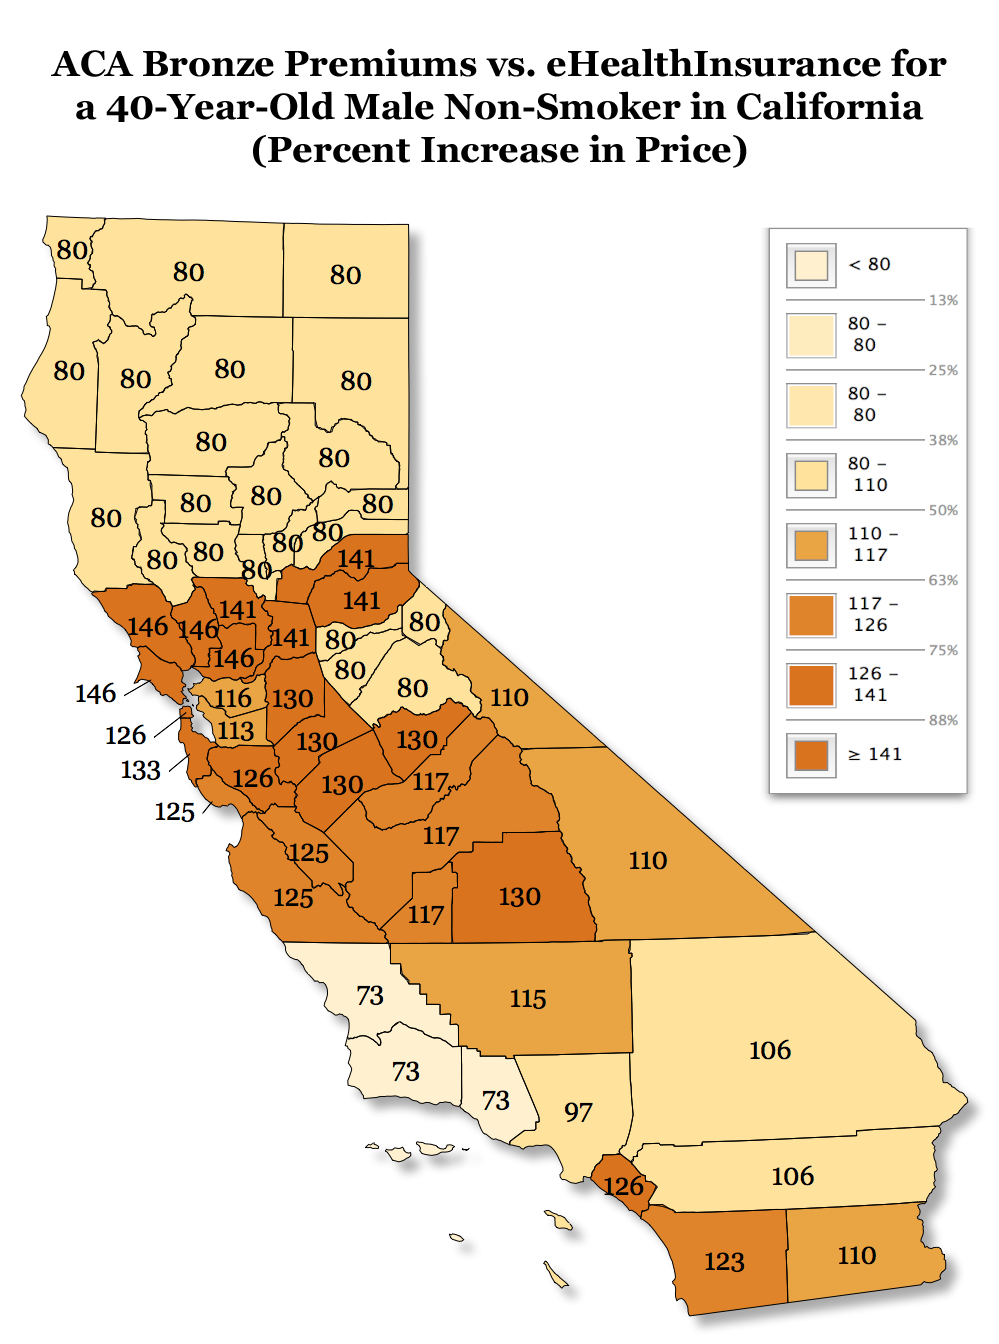 California Zip Codes Map My Blog For Southern Code - Touran - California Zip Code Map